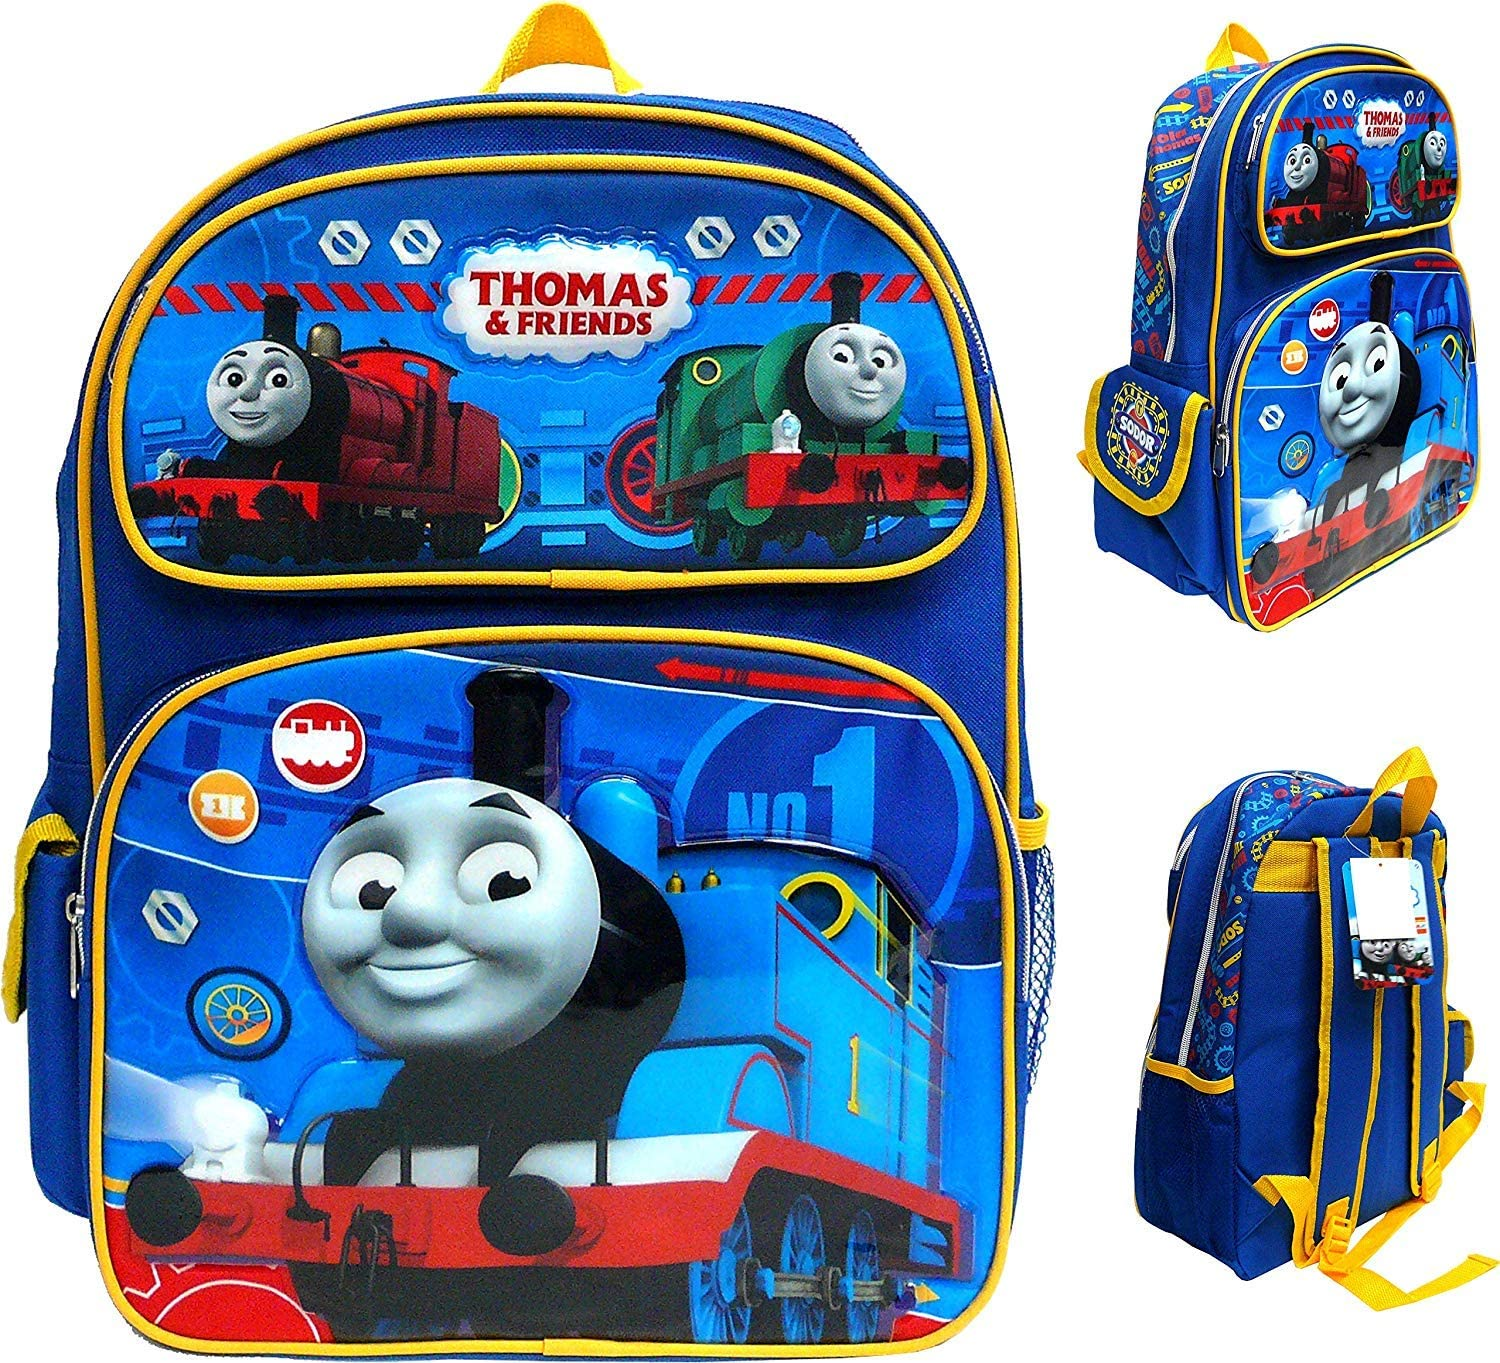 Thomas and Friends 10 inches Mini Backpack